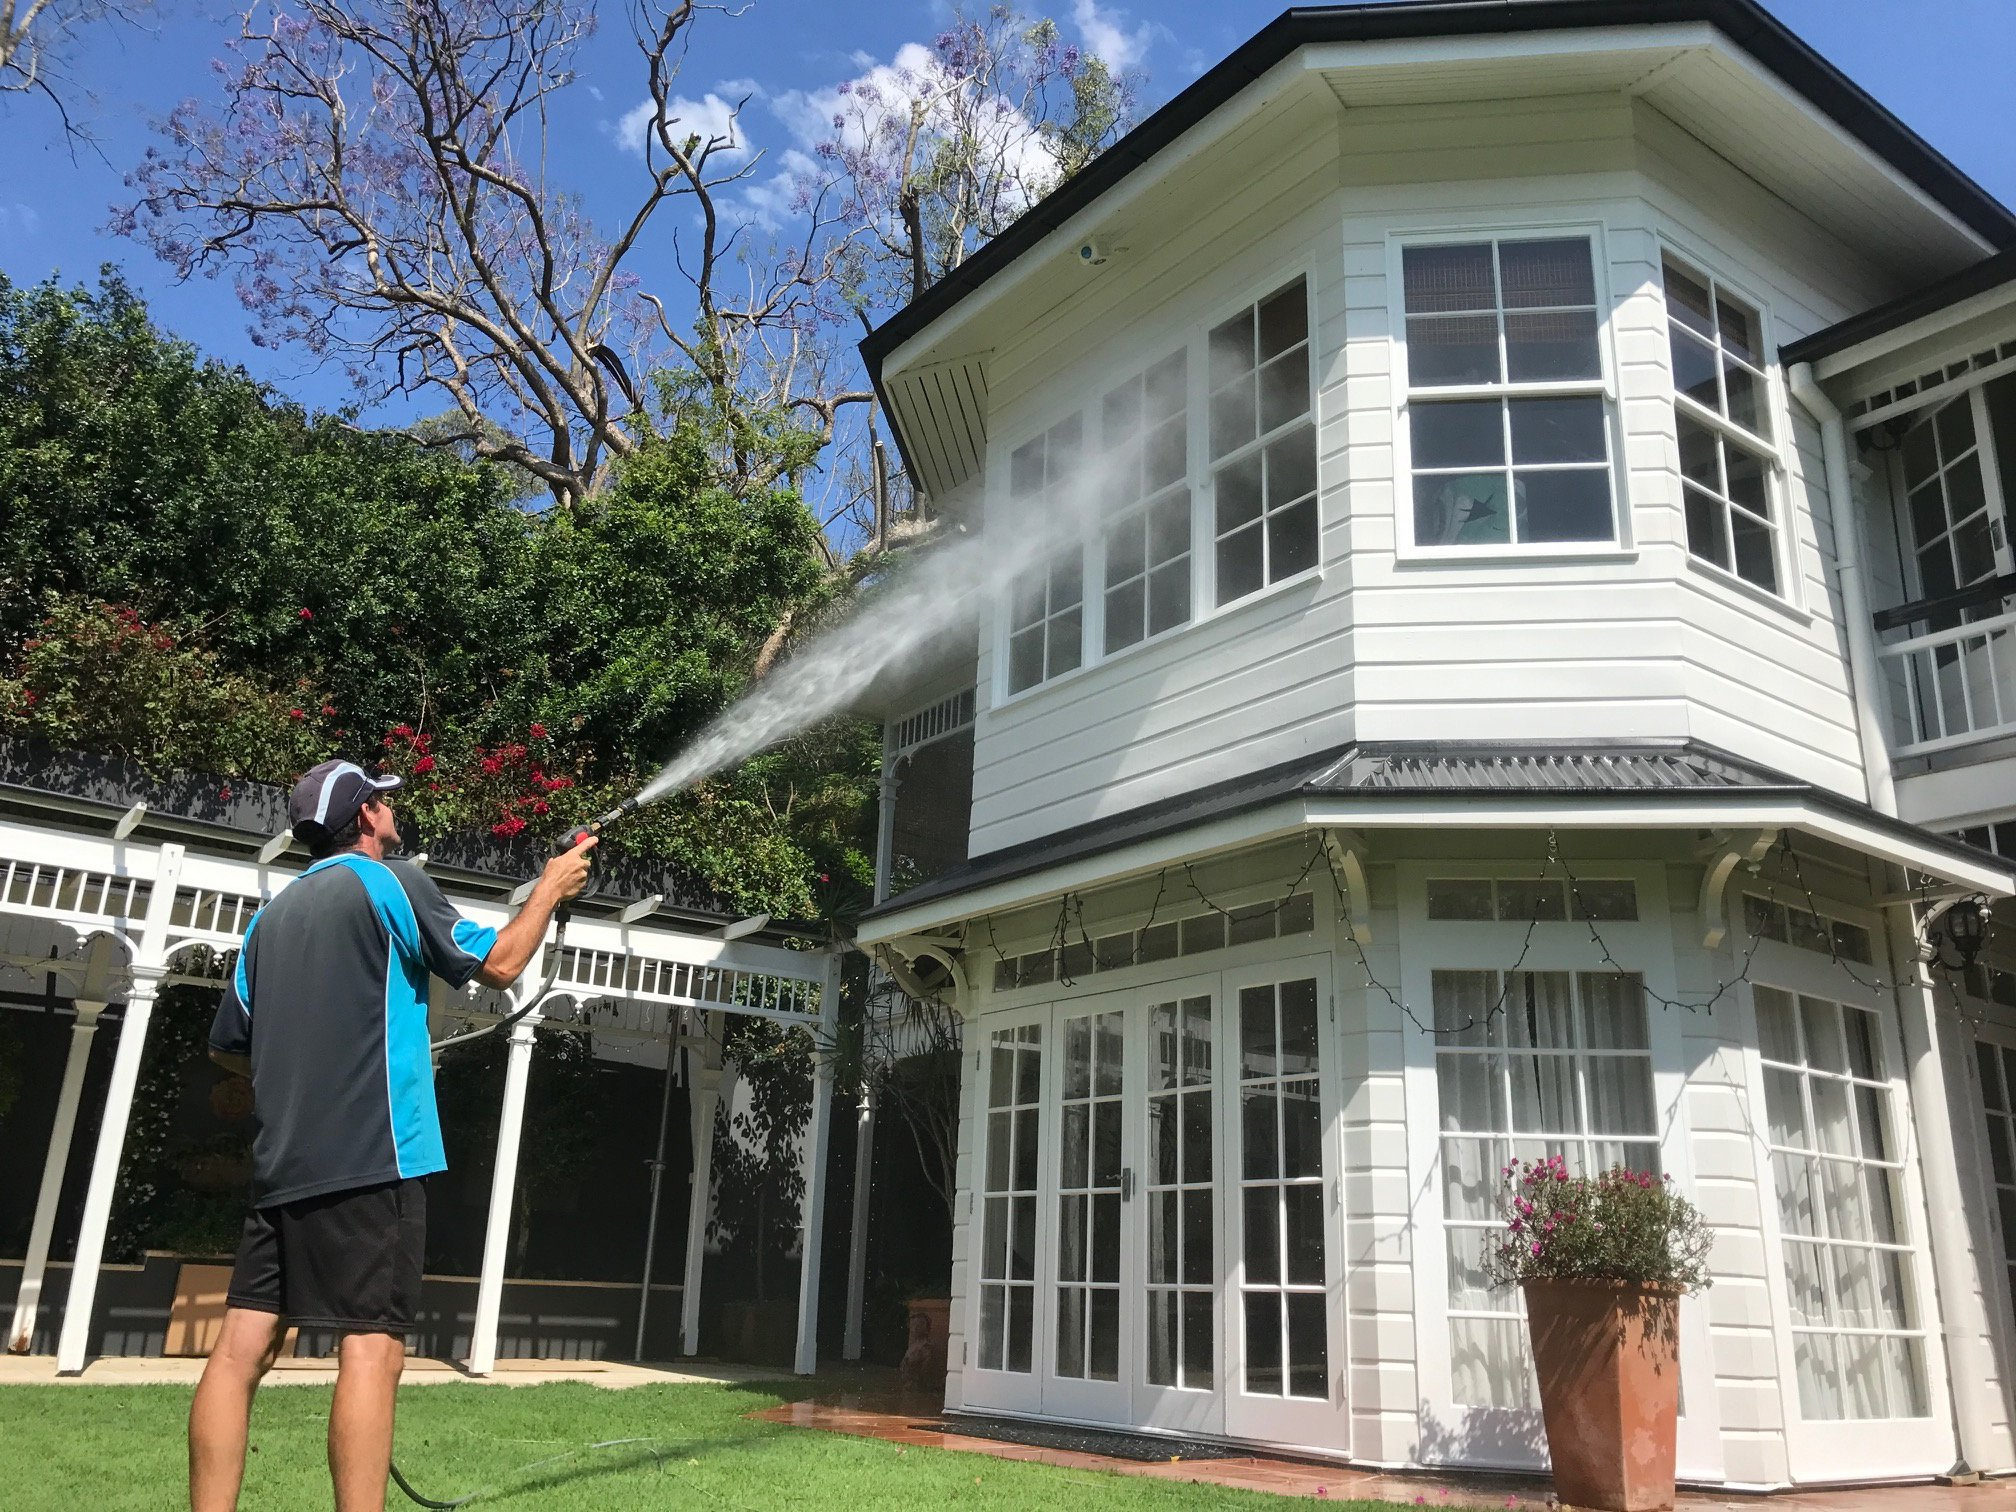 Deception Bay Roof washing services